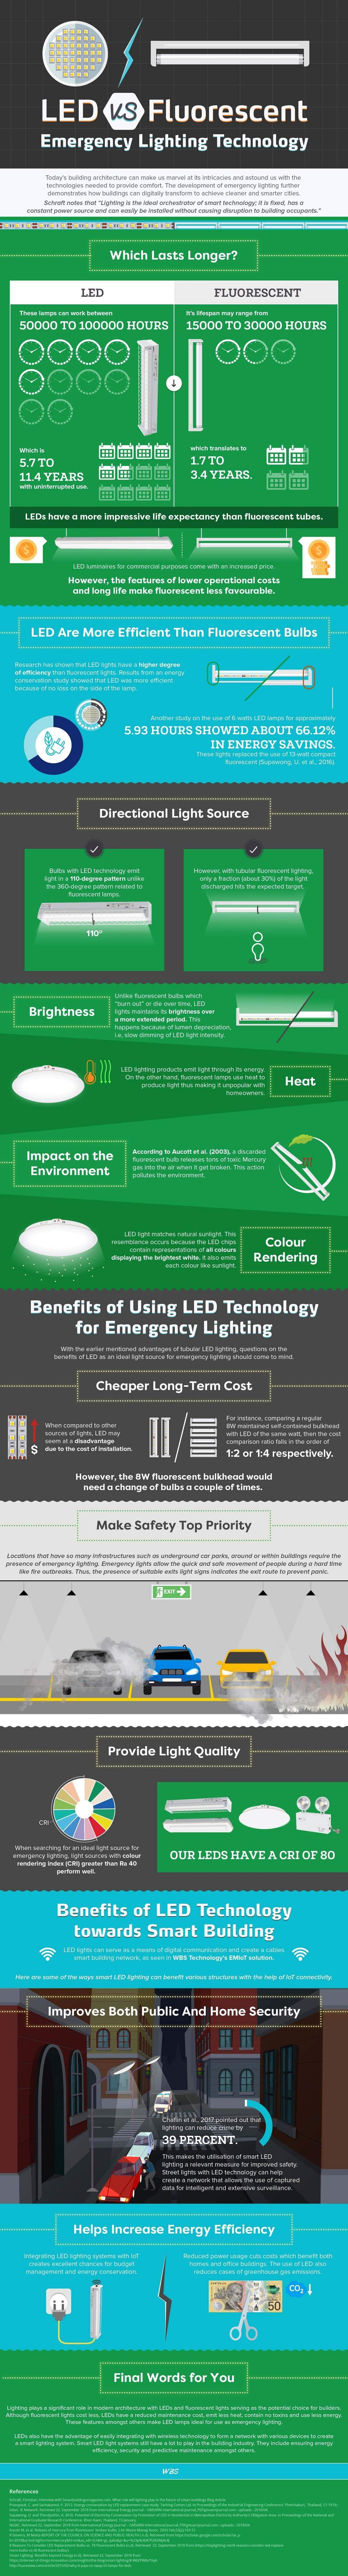 LED Vs Fluorescent Emergency Lighting Technology #infographic